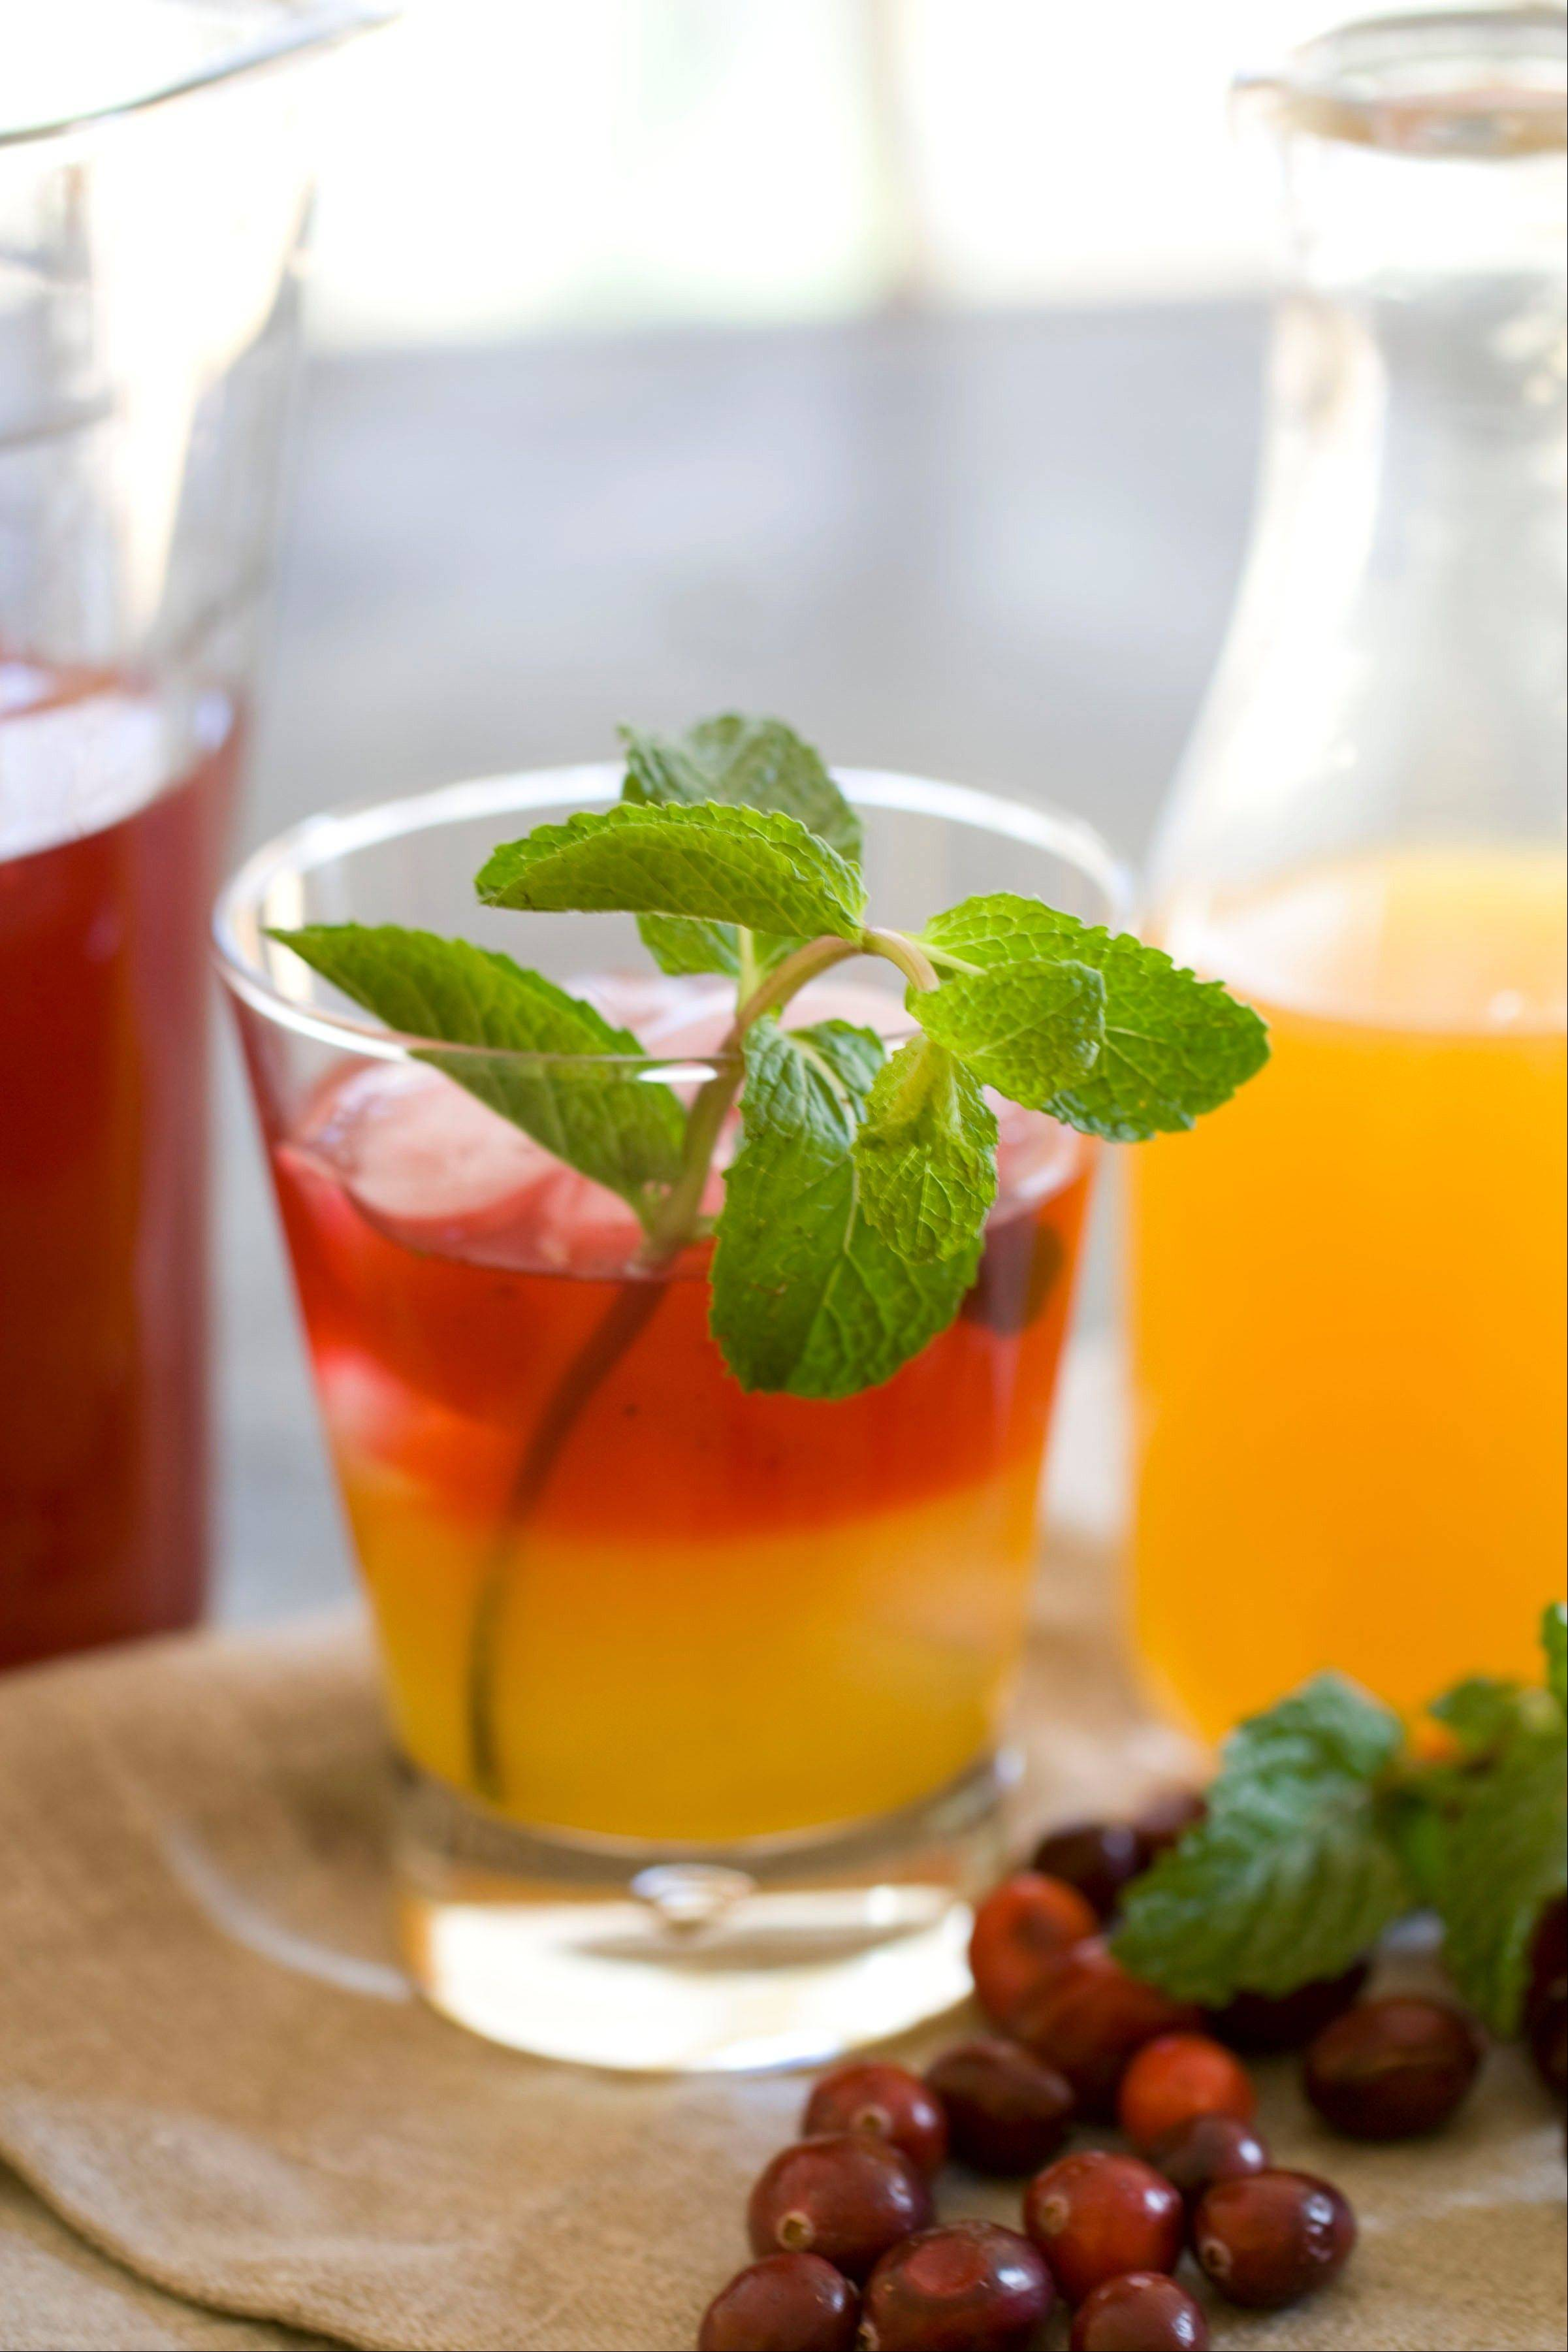 Cranberry-mint margaritas are sweetened with agave nectar.